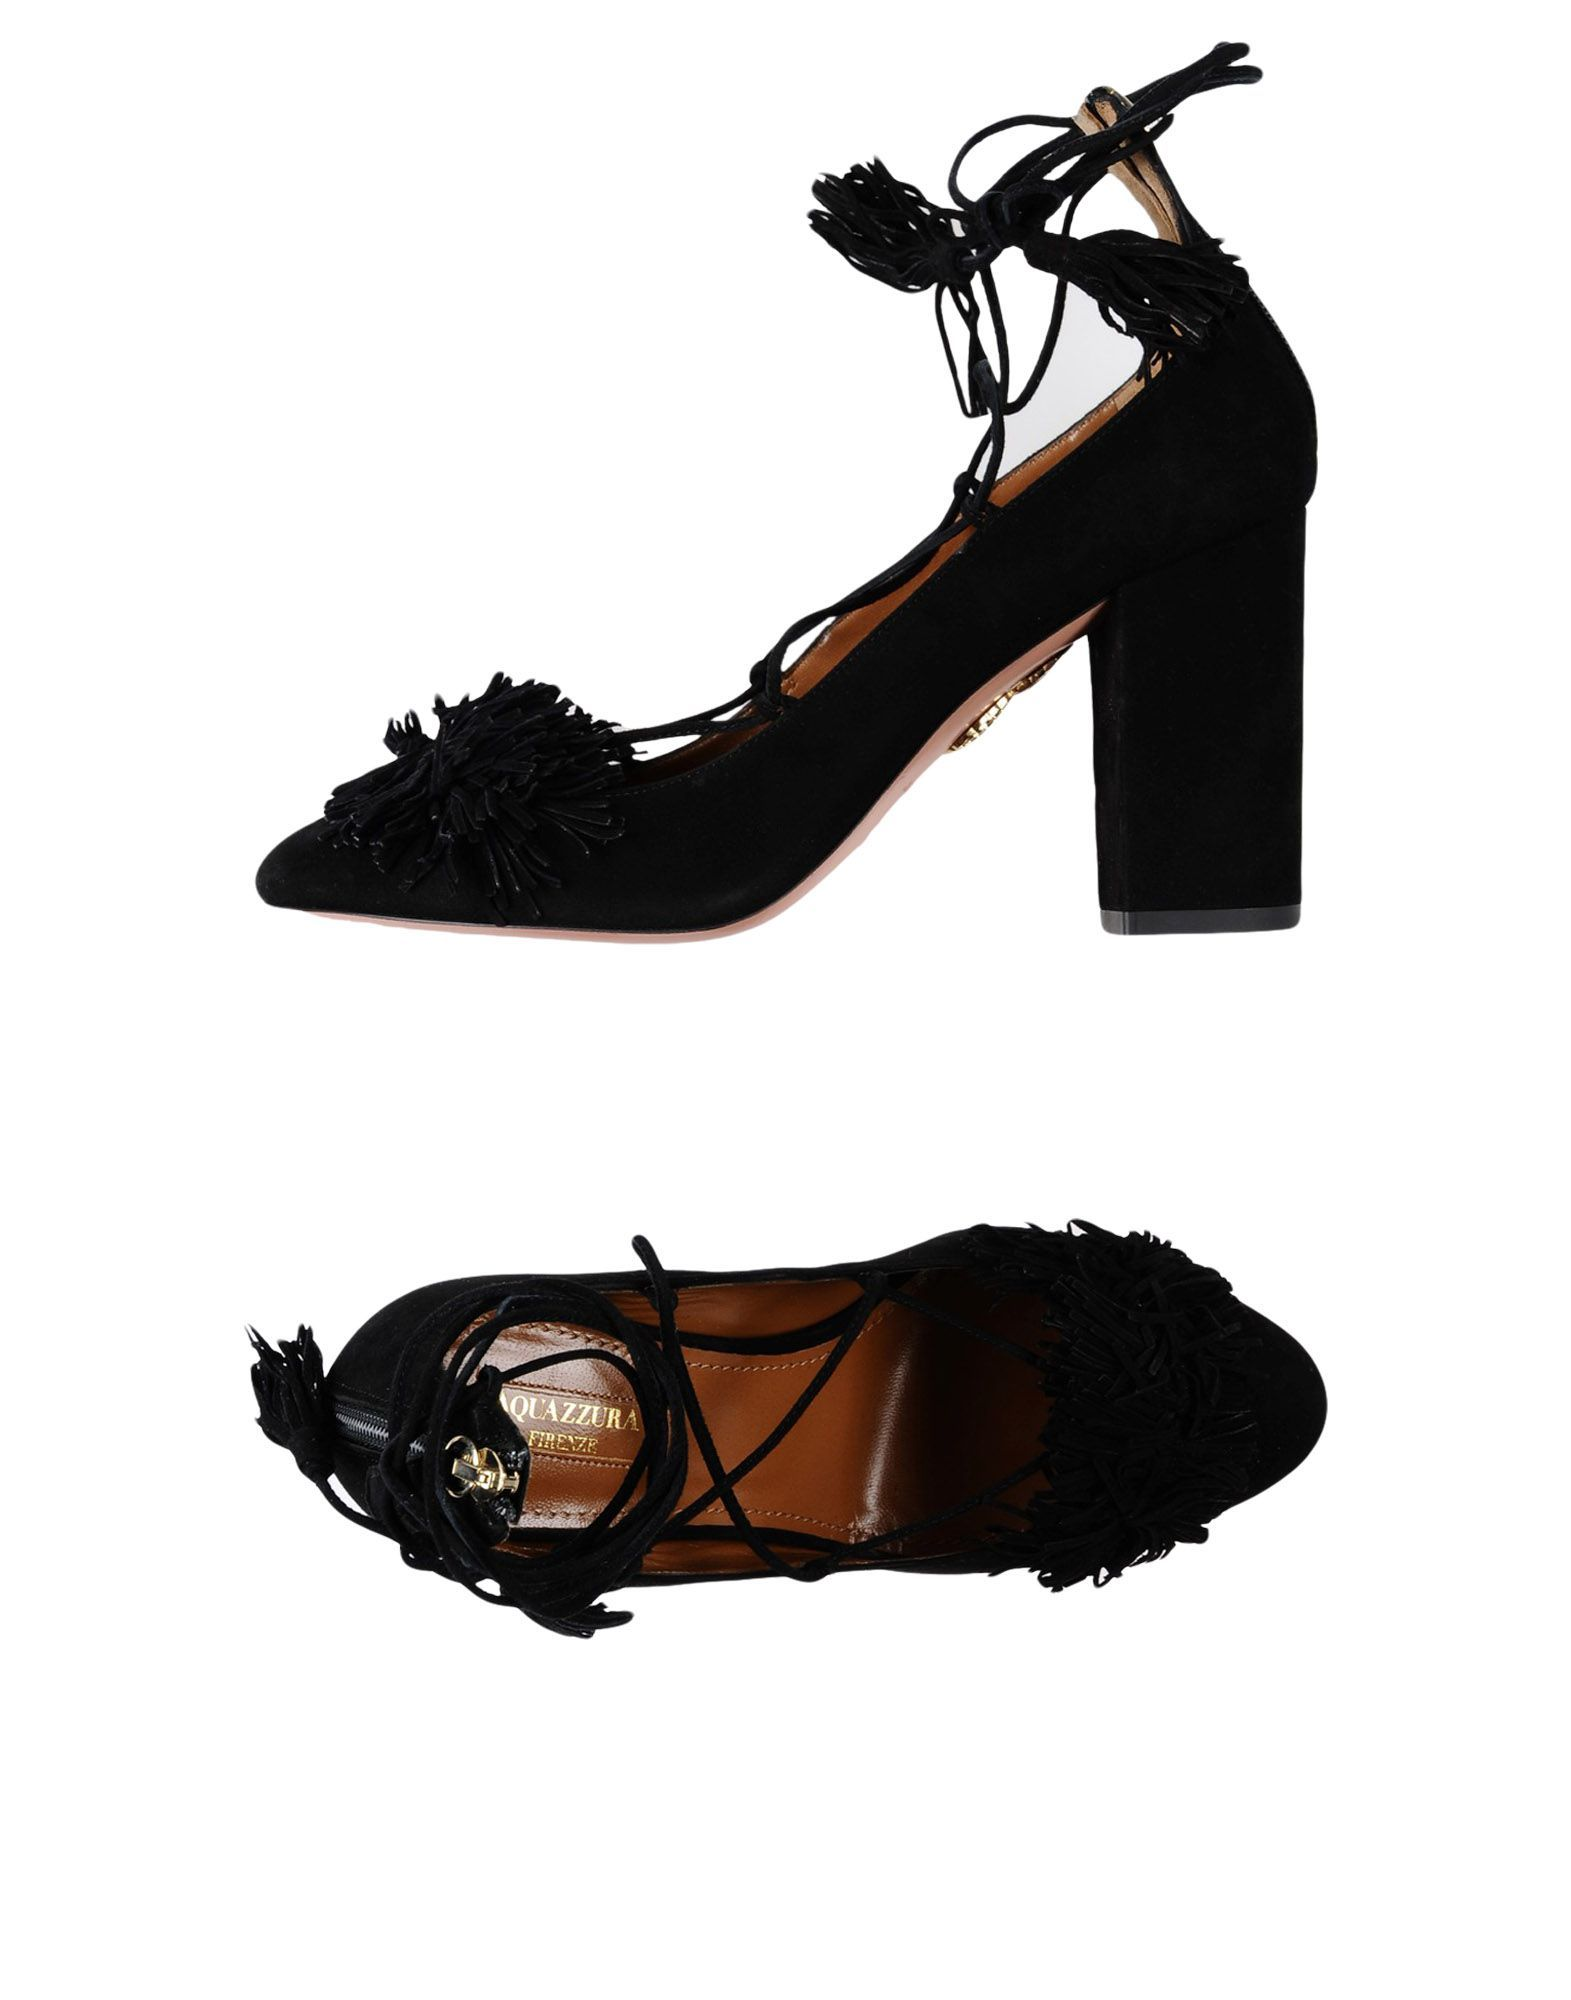 Aquazzura Black Leather Heels With Tassels